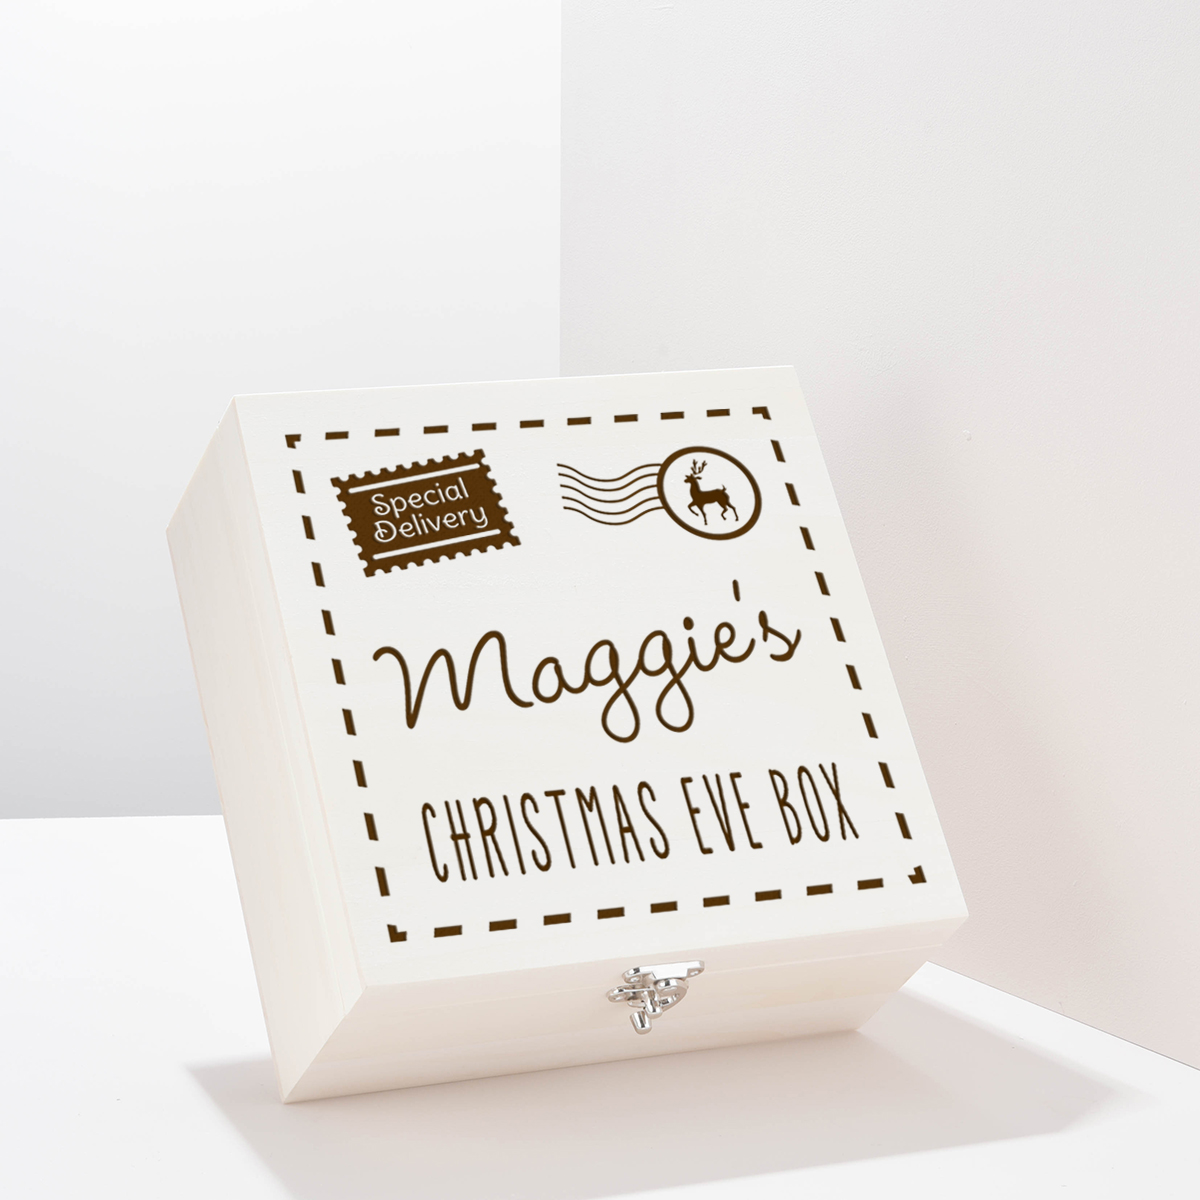 Personalised Storage Box - Christmas Eve Box